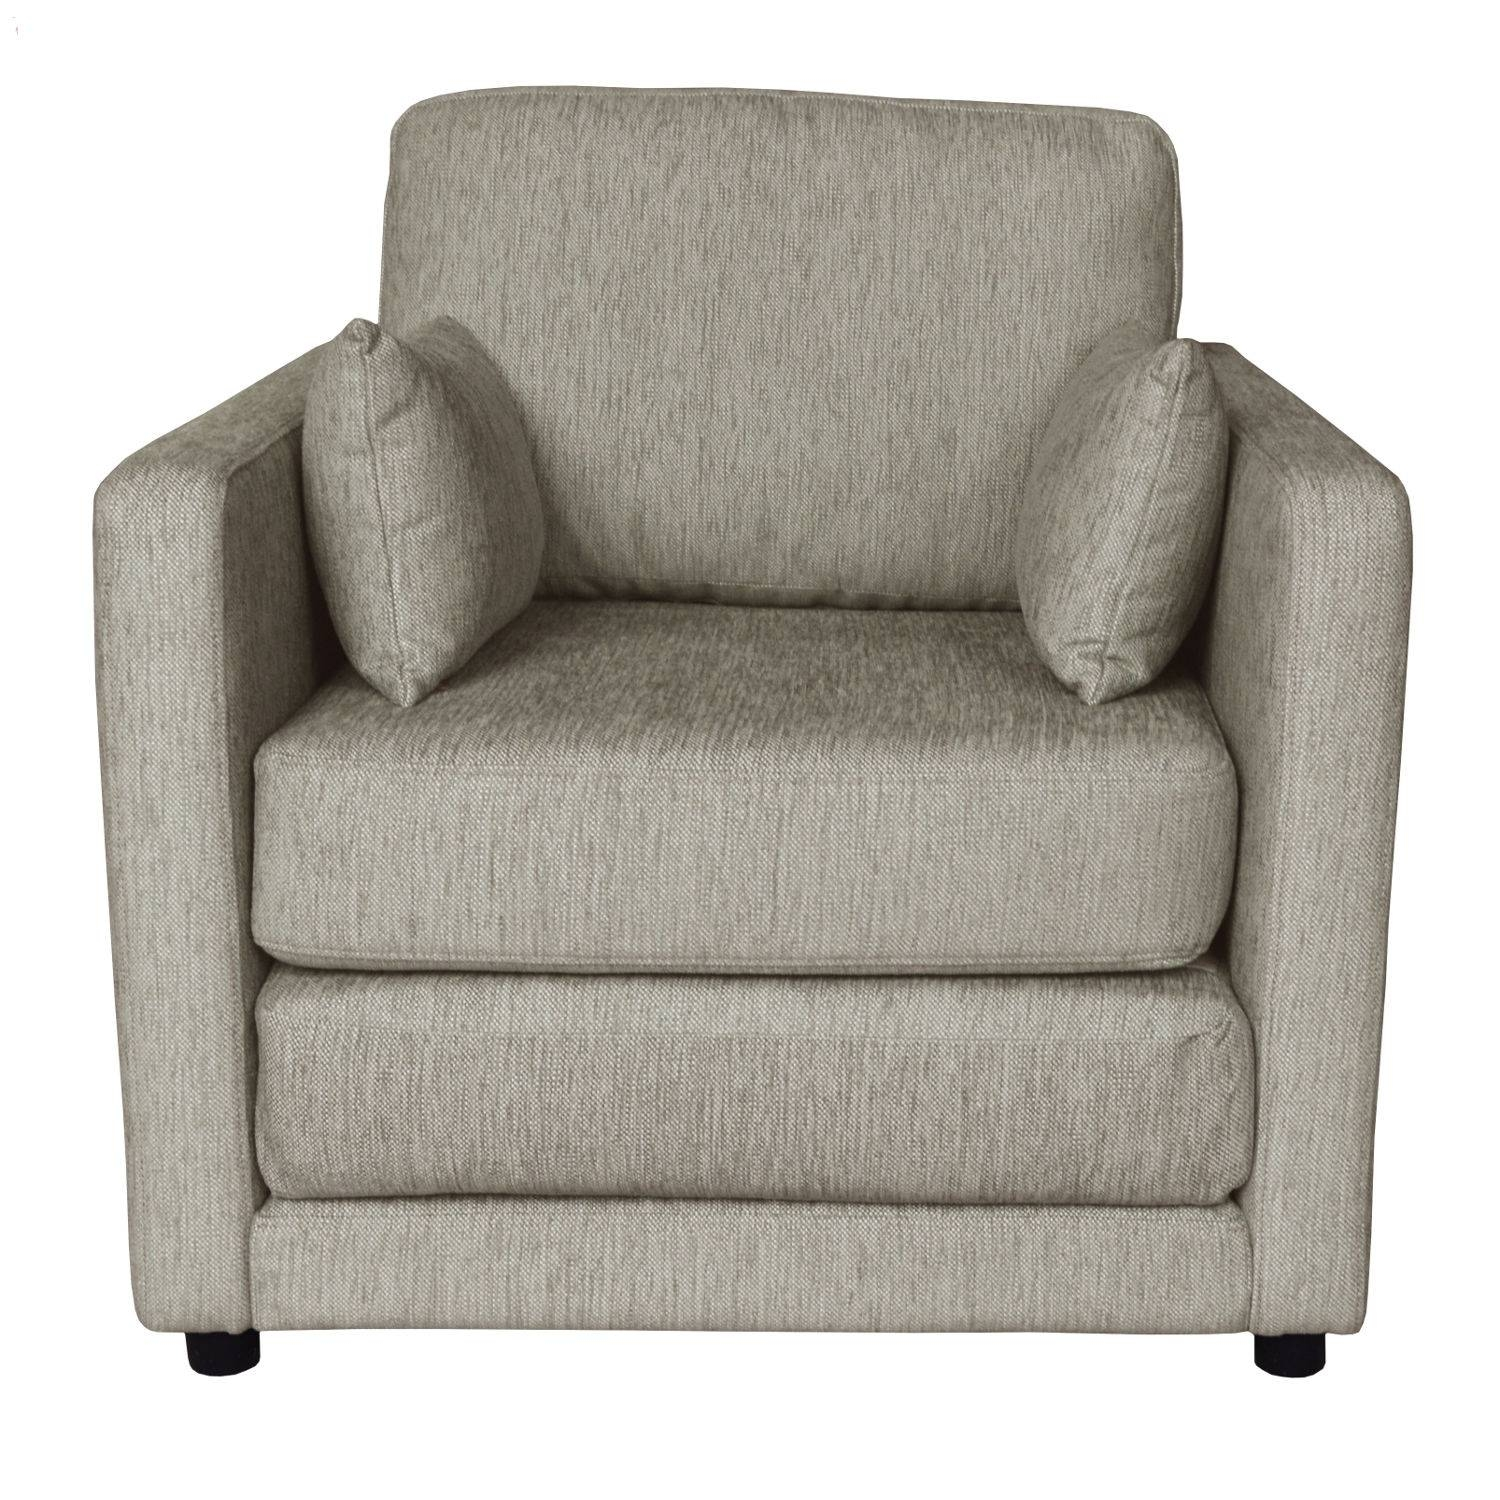 Chair Milly Grey Print Barrel Chair Armchair Accent Home Furniture with Sofa Arm Chairs (Image 5 of 15)